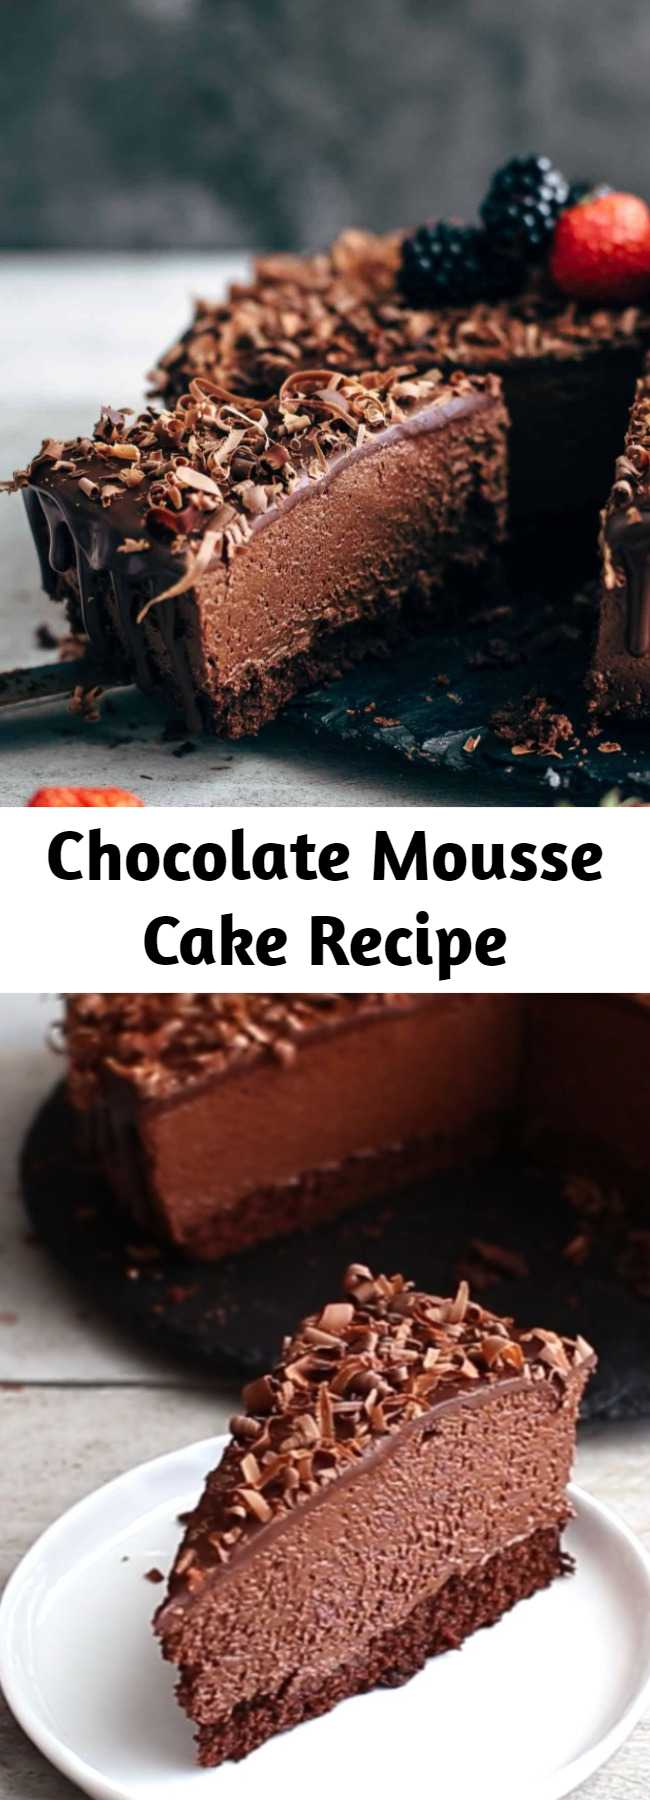 Chocolate Mousse Cake Recipe - This is the perfect Chocolate Mousse Cake recipe. Soft and moist chocolate cake layer topped with super creamy chocolate mousse and soft chocolate ganache. #chocolatemousse #chocolate #mousse #moussecake #cake #baking #desserts #sweets